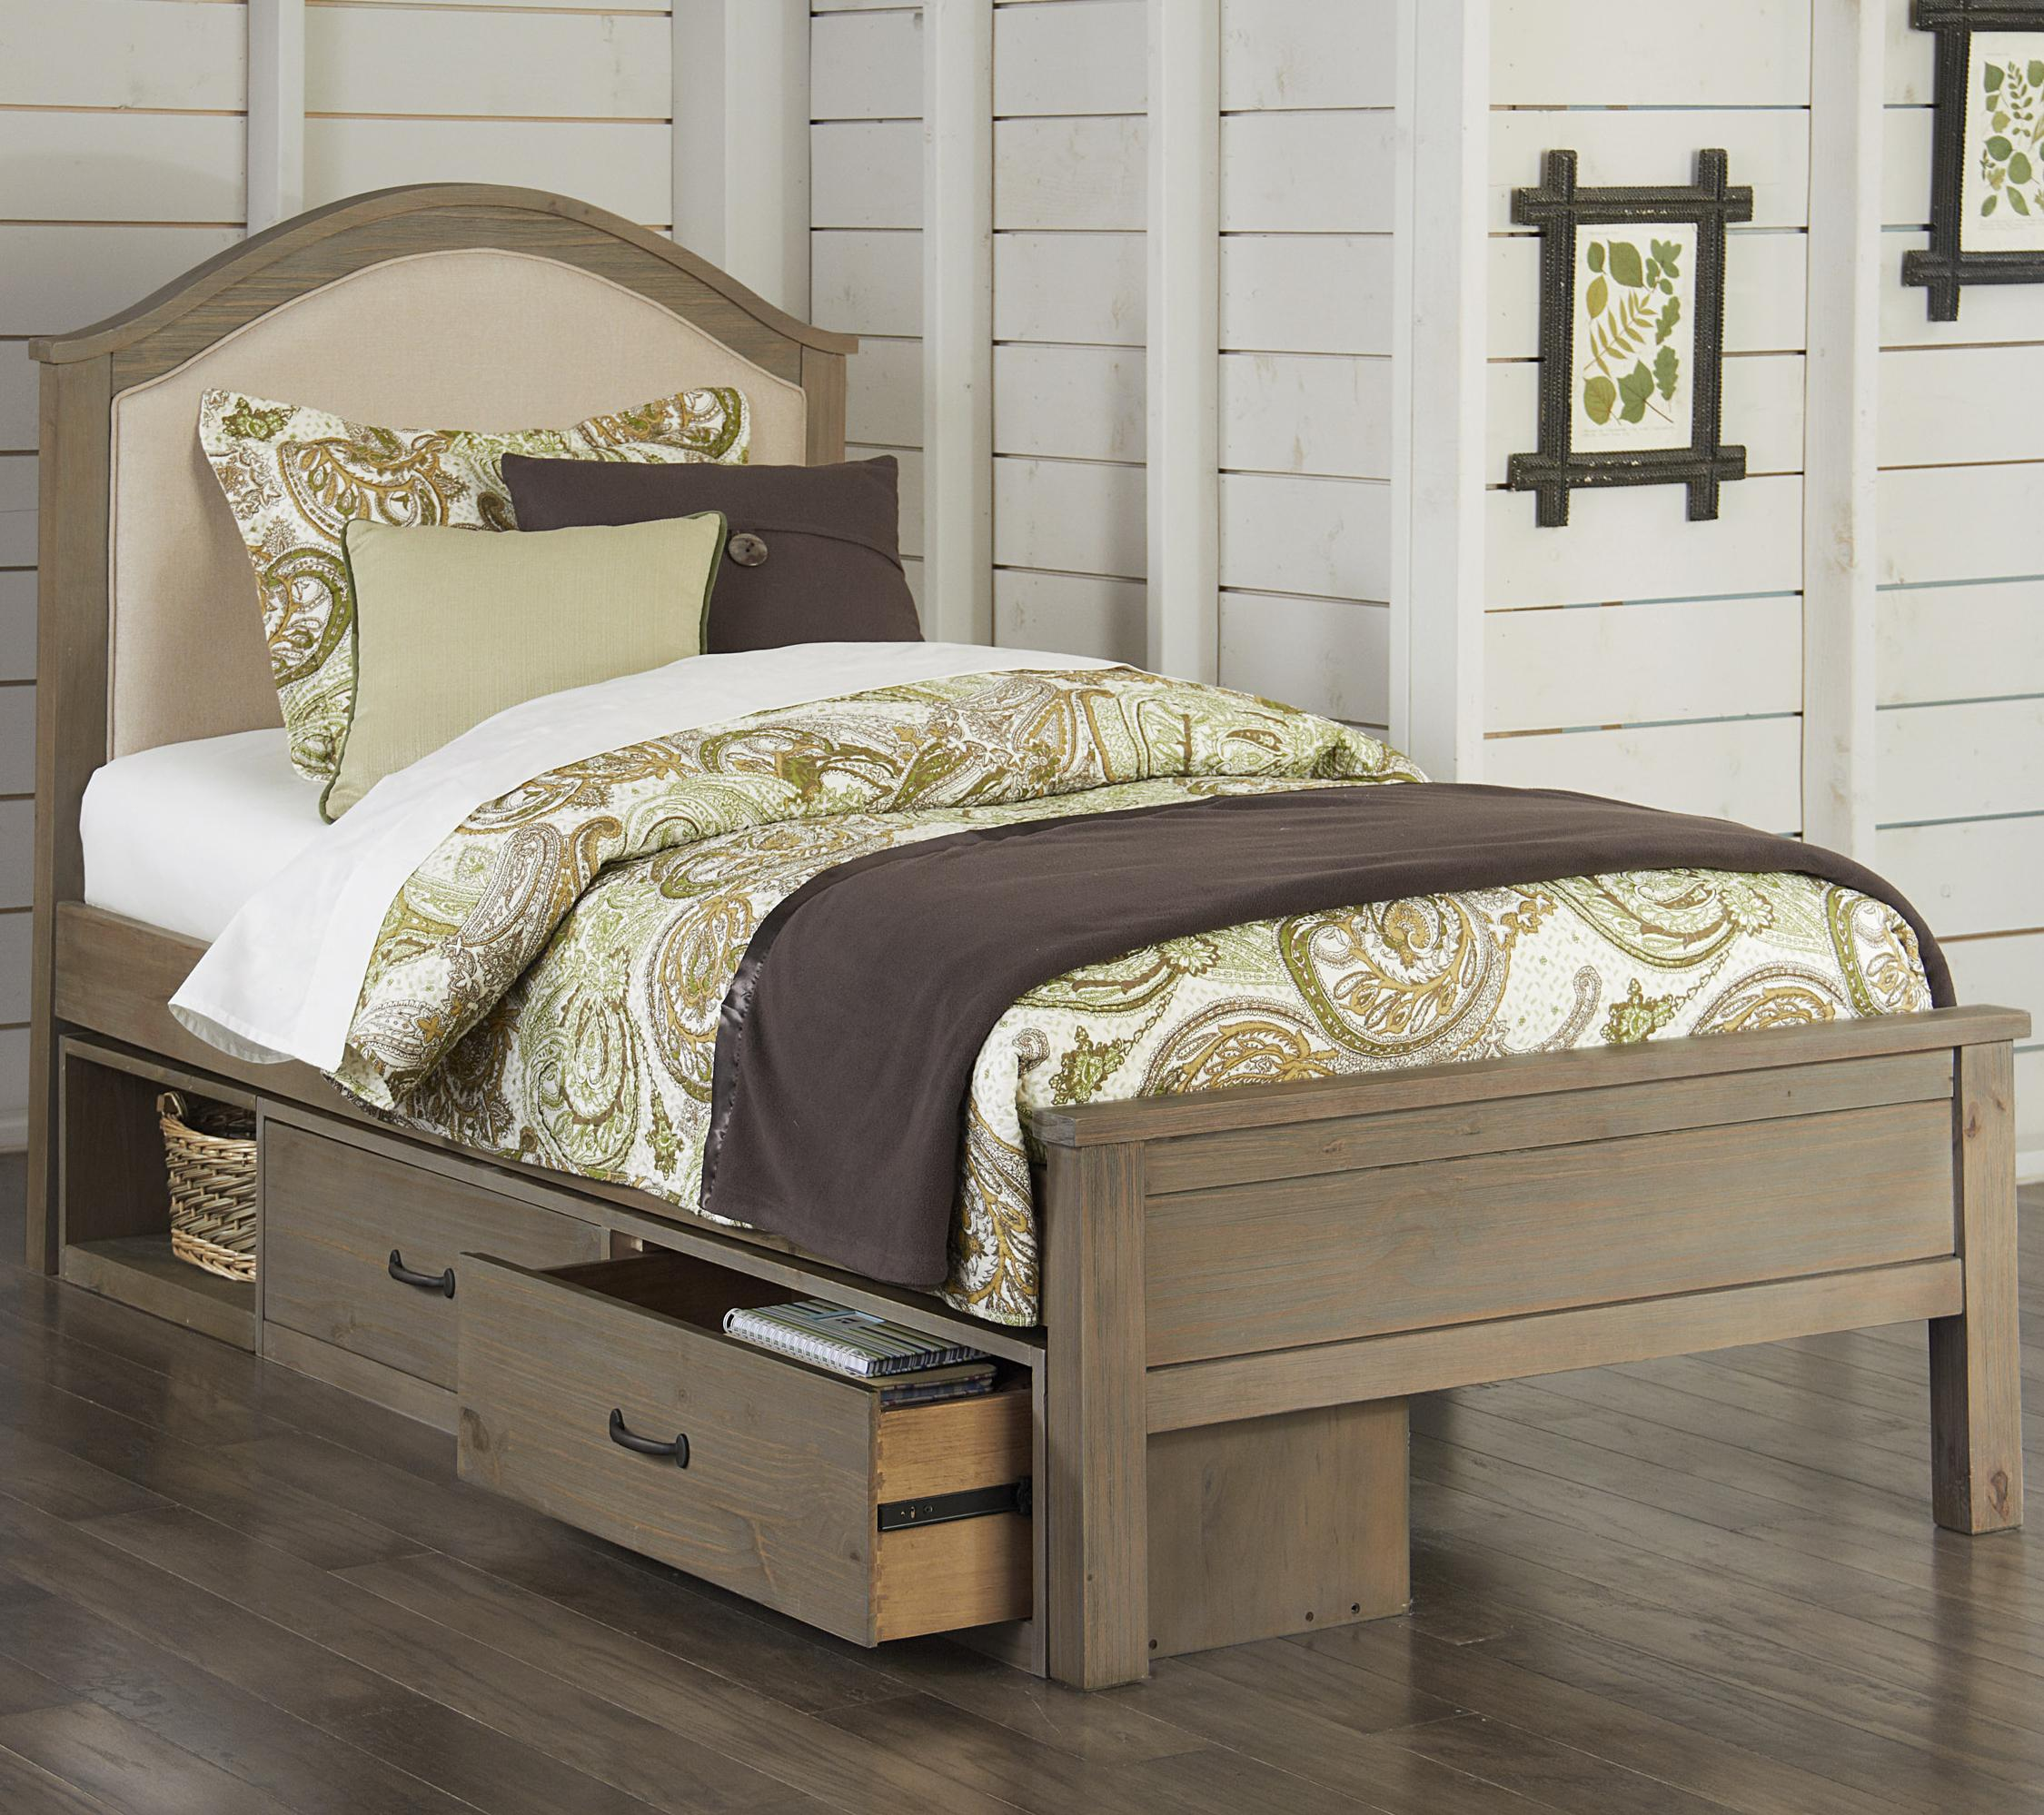 NE Kids Highlands Twin Bailey Upholstered Bed with Storage - Item Number: 10010+10590